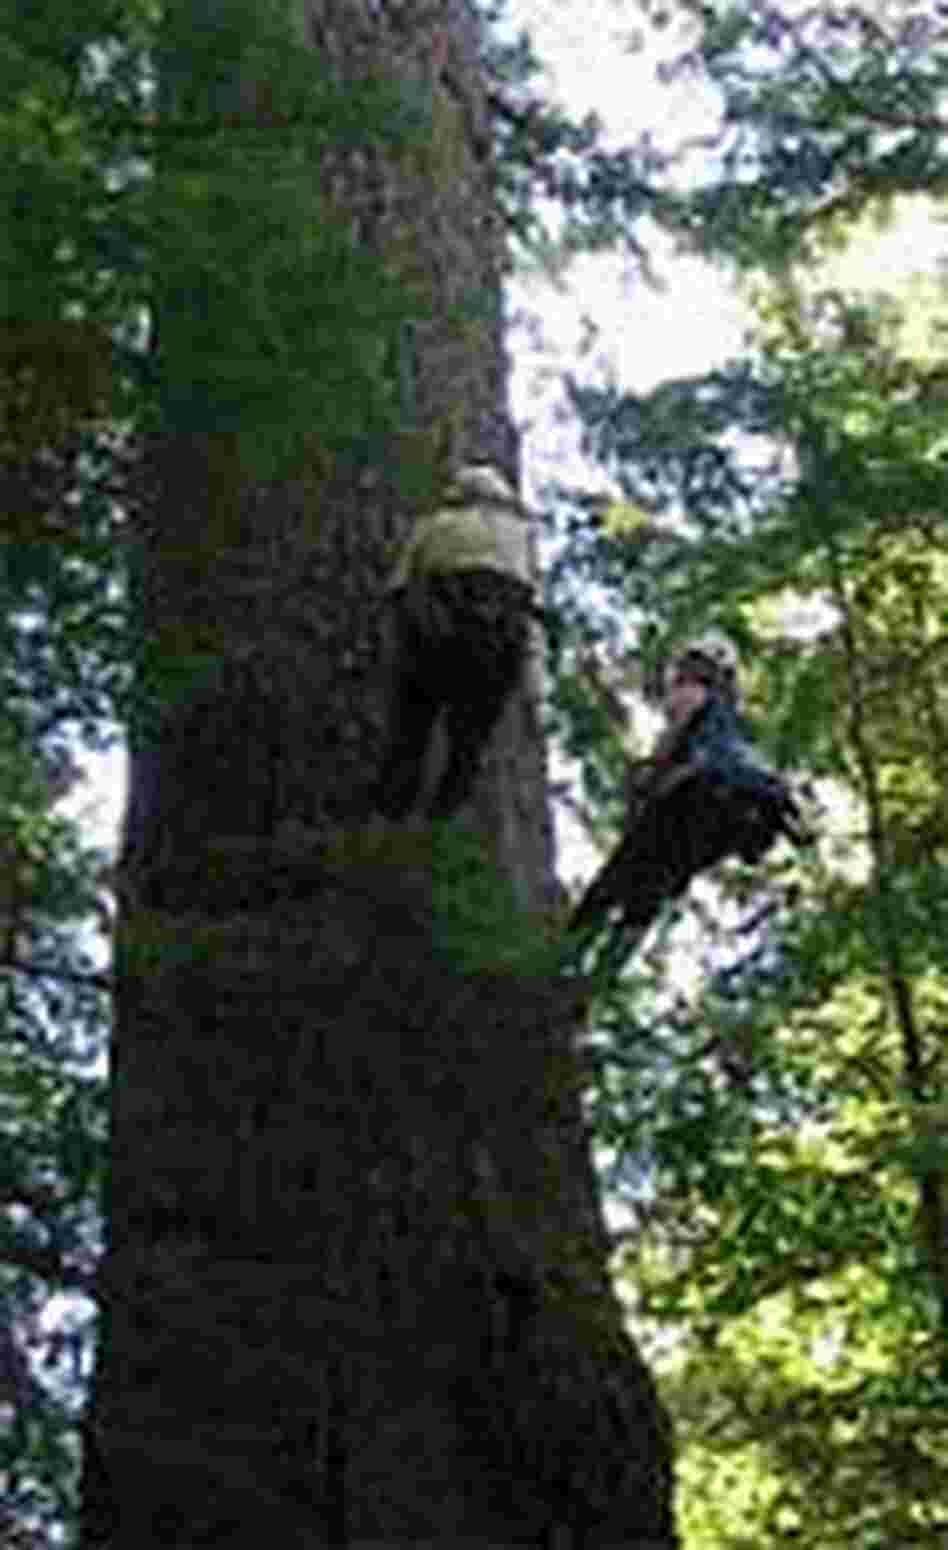 Scott Altenhoff, left, and NPR's Ketzel Levine climb a Douglas fir.